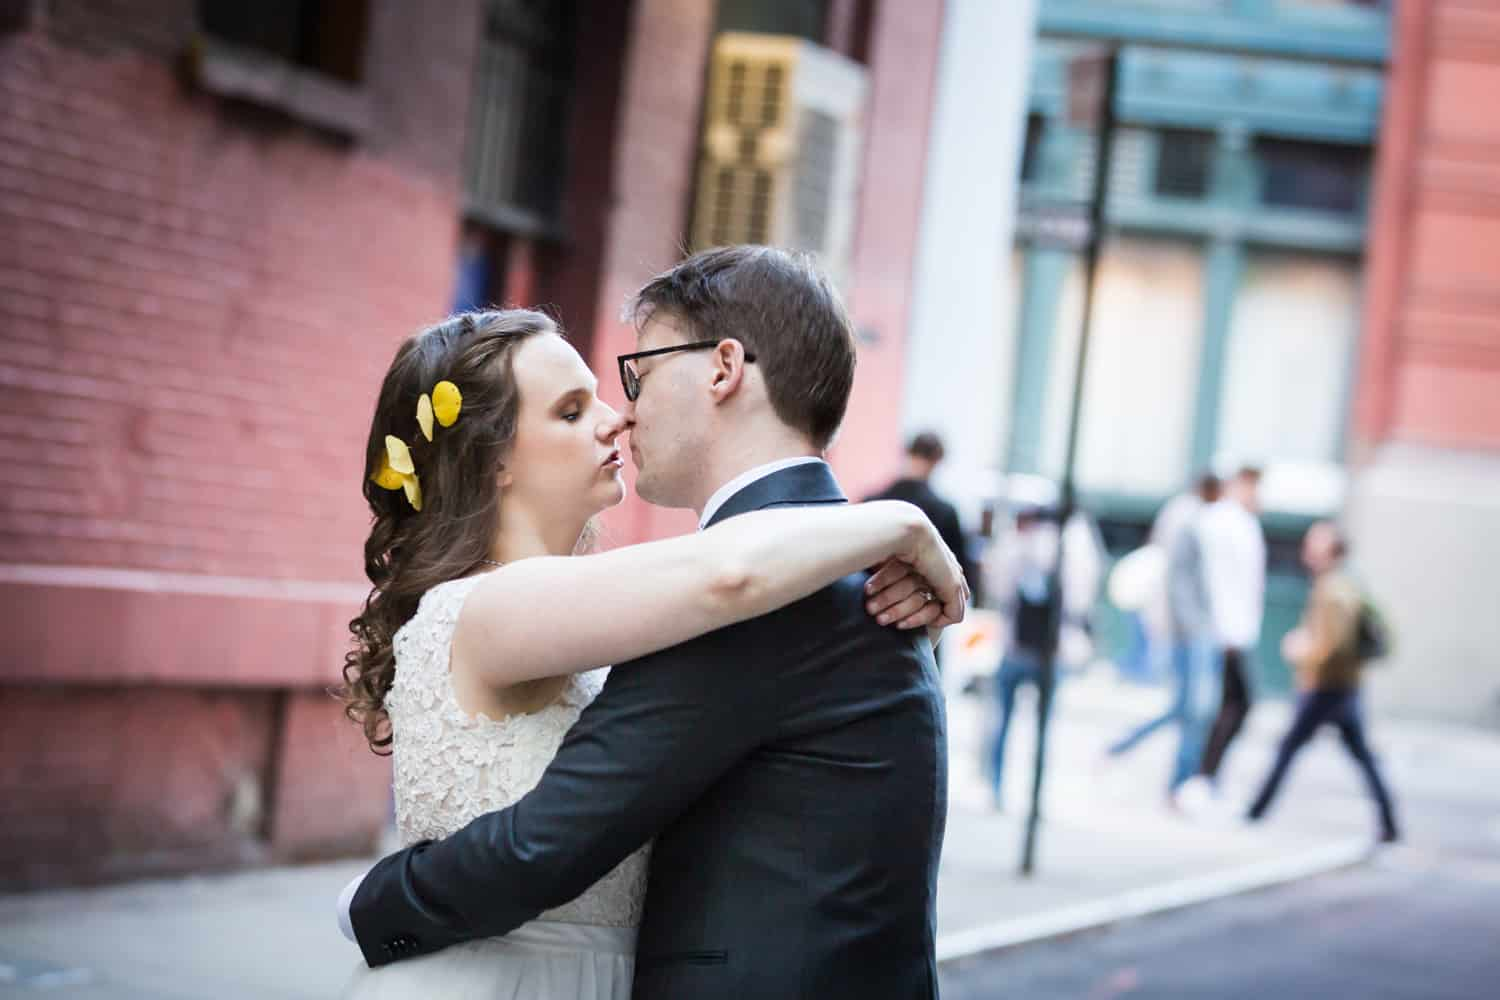 Bride and groom about to kiss in alleyway for an article on Covid-19 wedding planning